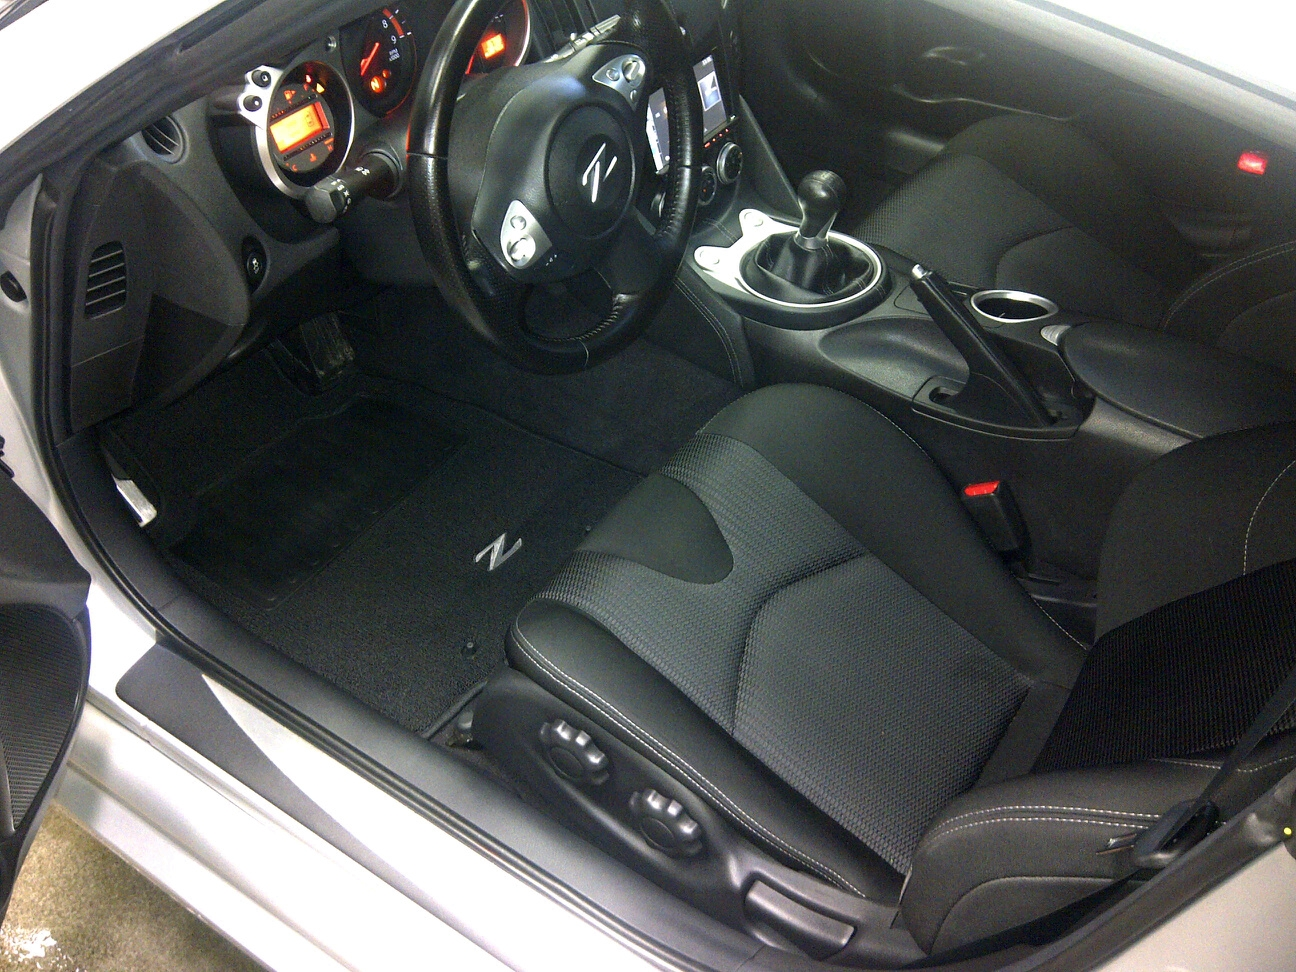 Best interior car detailing products - A Full Line Of Products For Interior Exterior Detailing